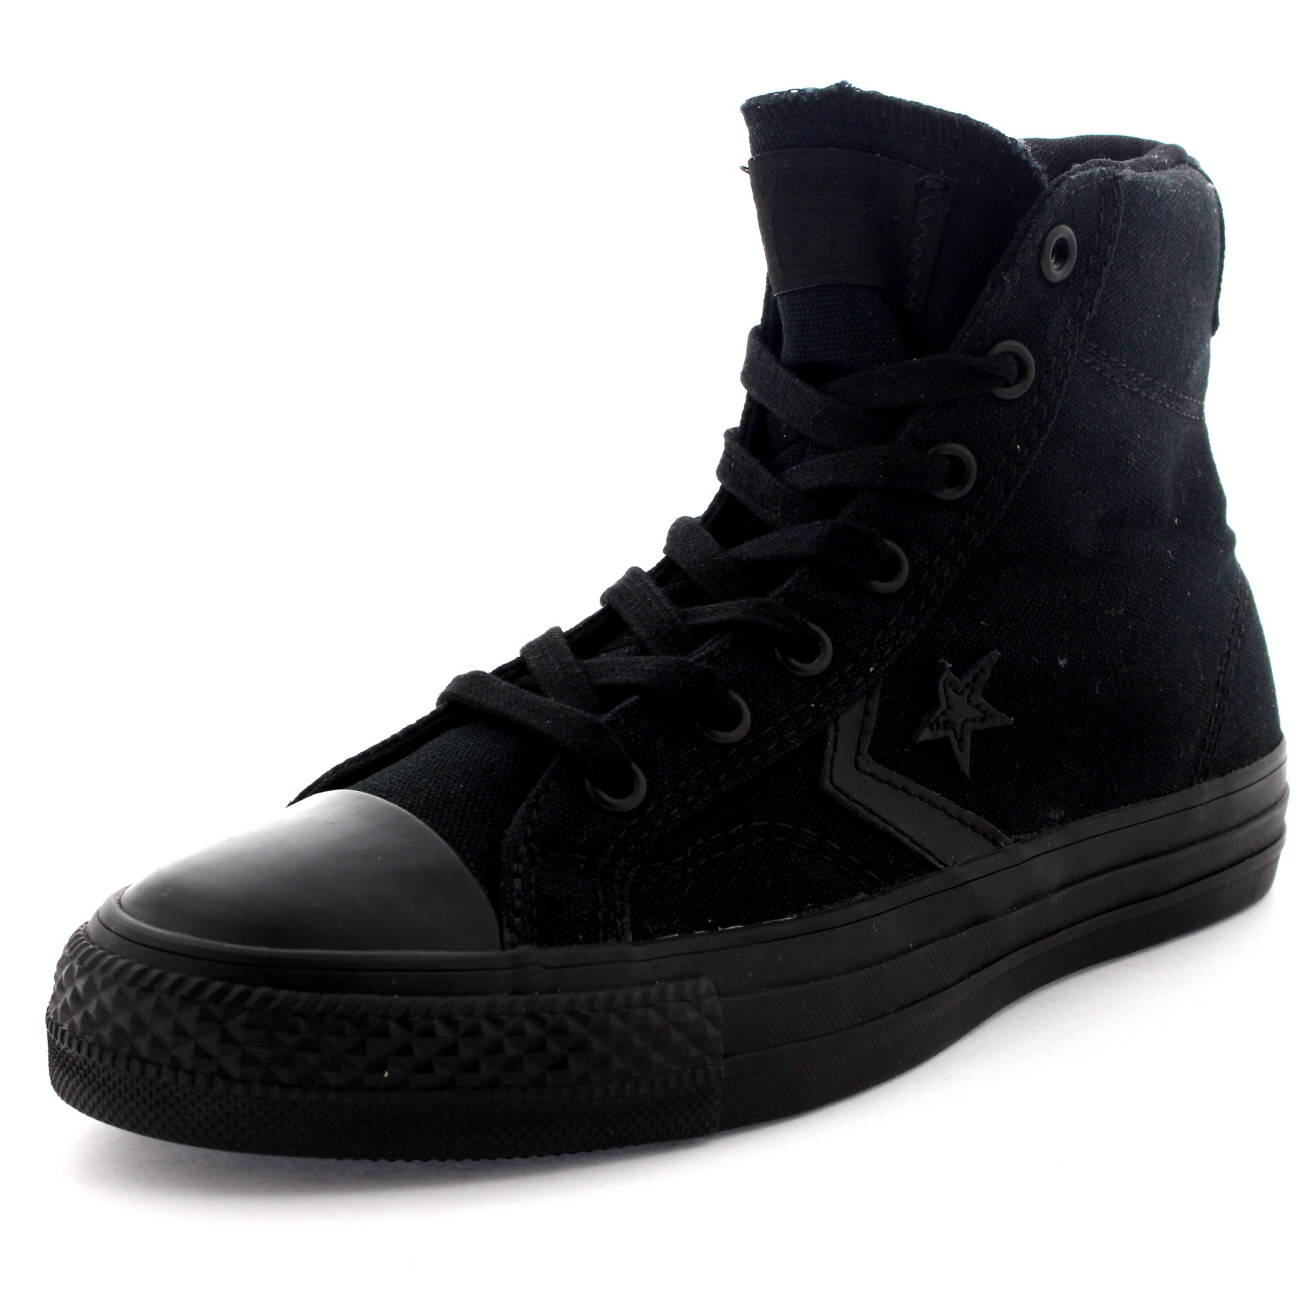 89fefa7a3395 Womens Converse Star Player Hi Chuck Taylor Original High Top Sneakers US 5 -11.5